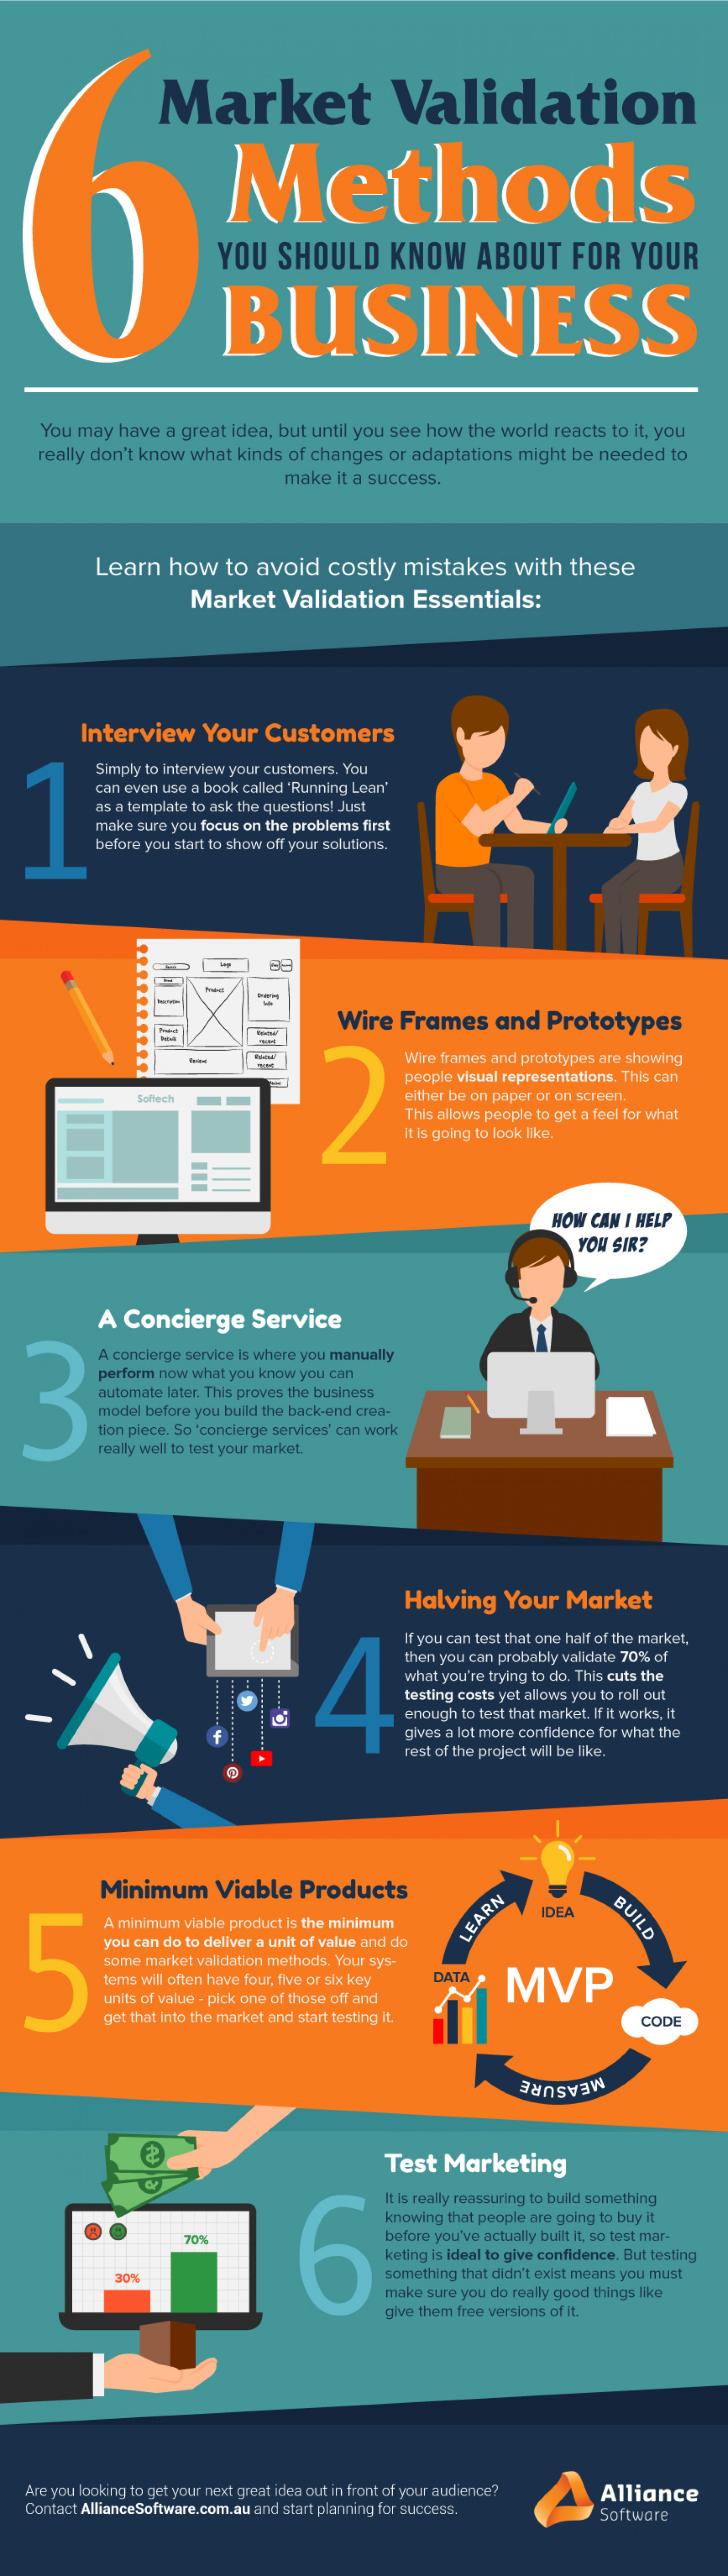 6 Ways to Validate Your Product Ideas Infographic